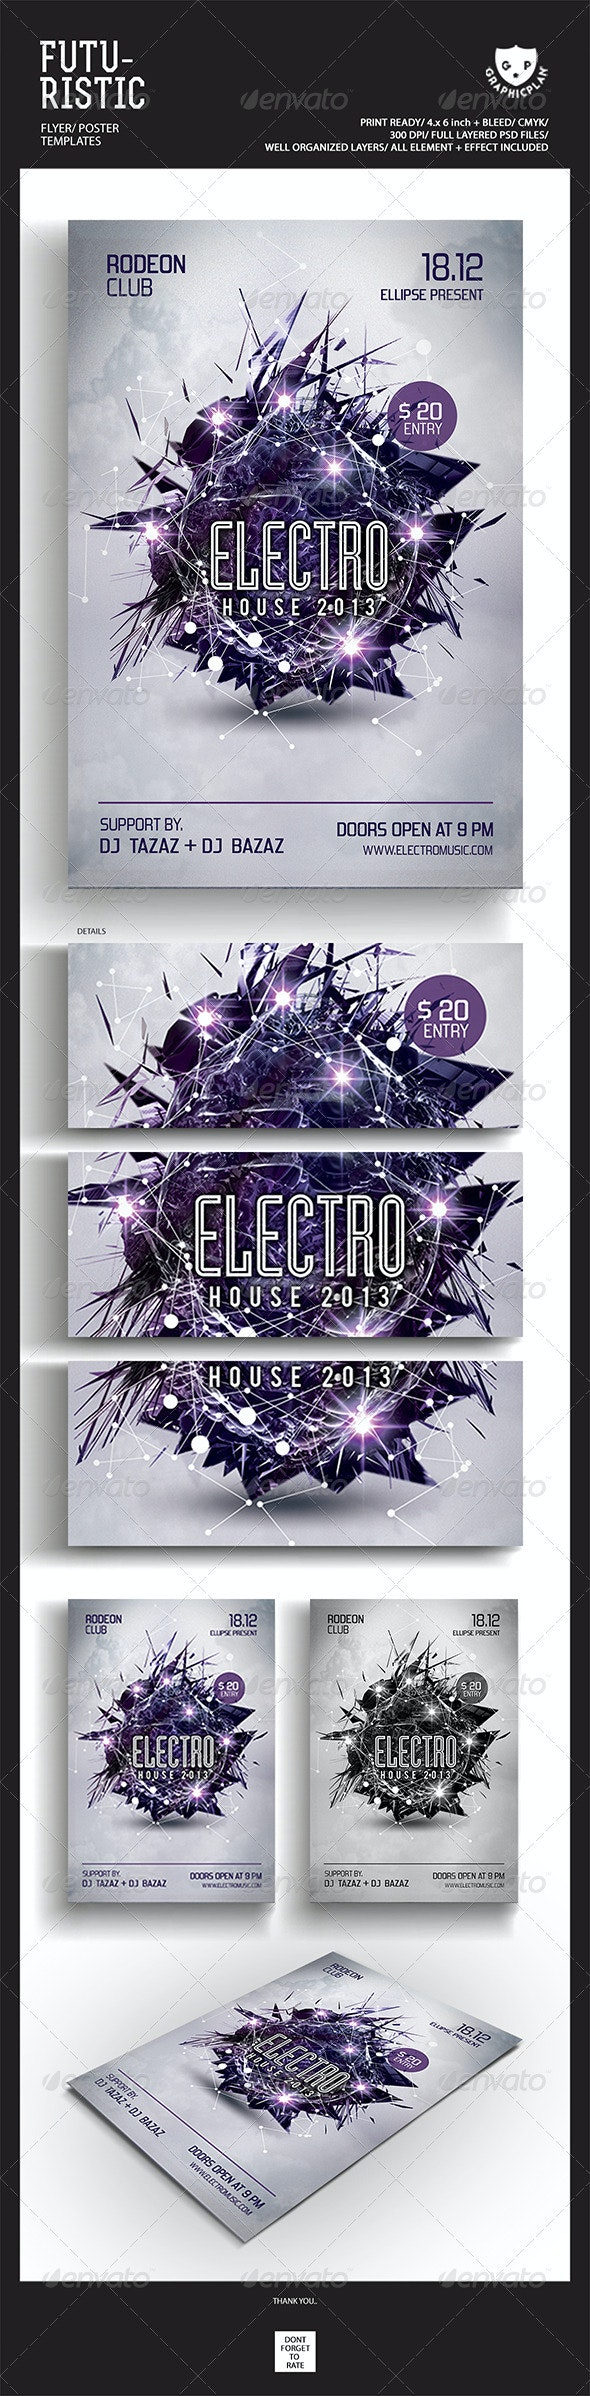 Electro House Futuristic Party Flyer Templates - Events Flyers